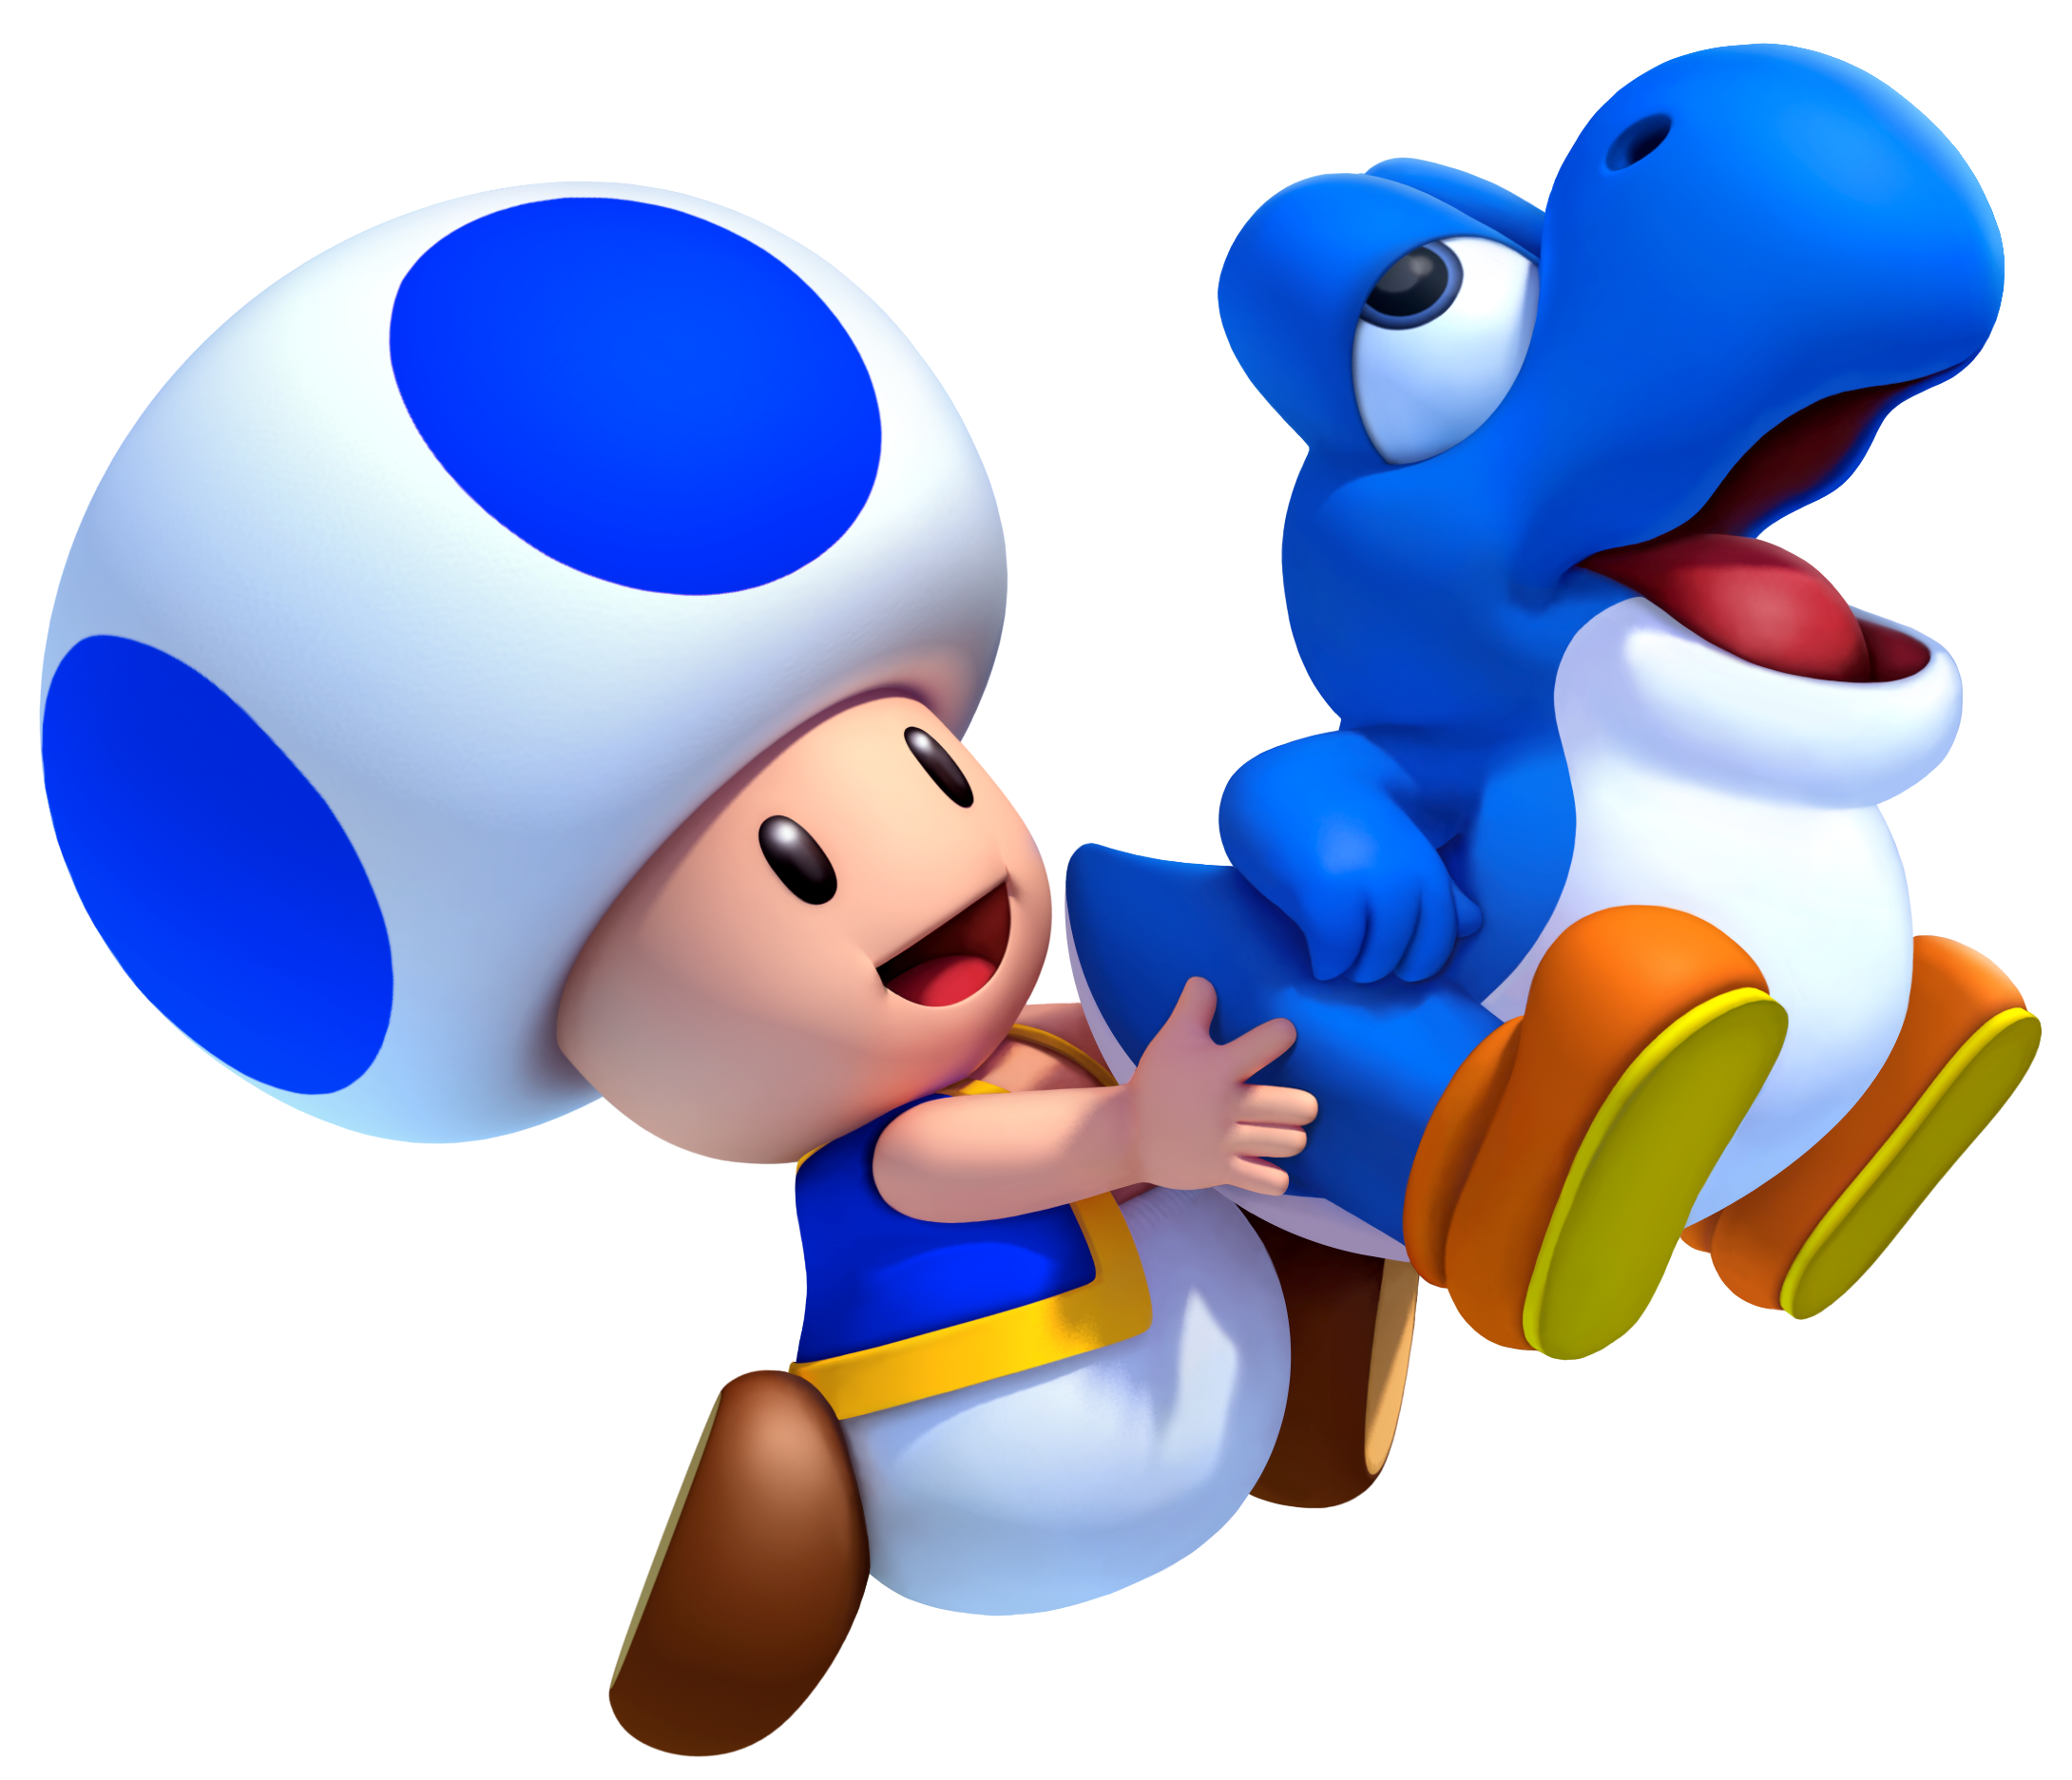 Blue Toad holding a blue Baby Yoshi in New Super Mario Bros. U .